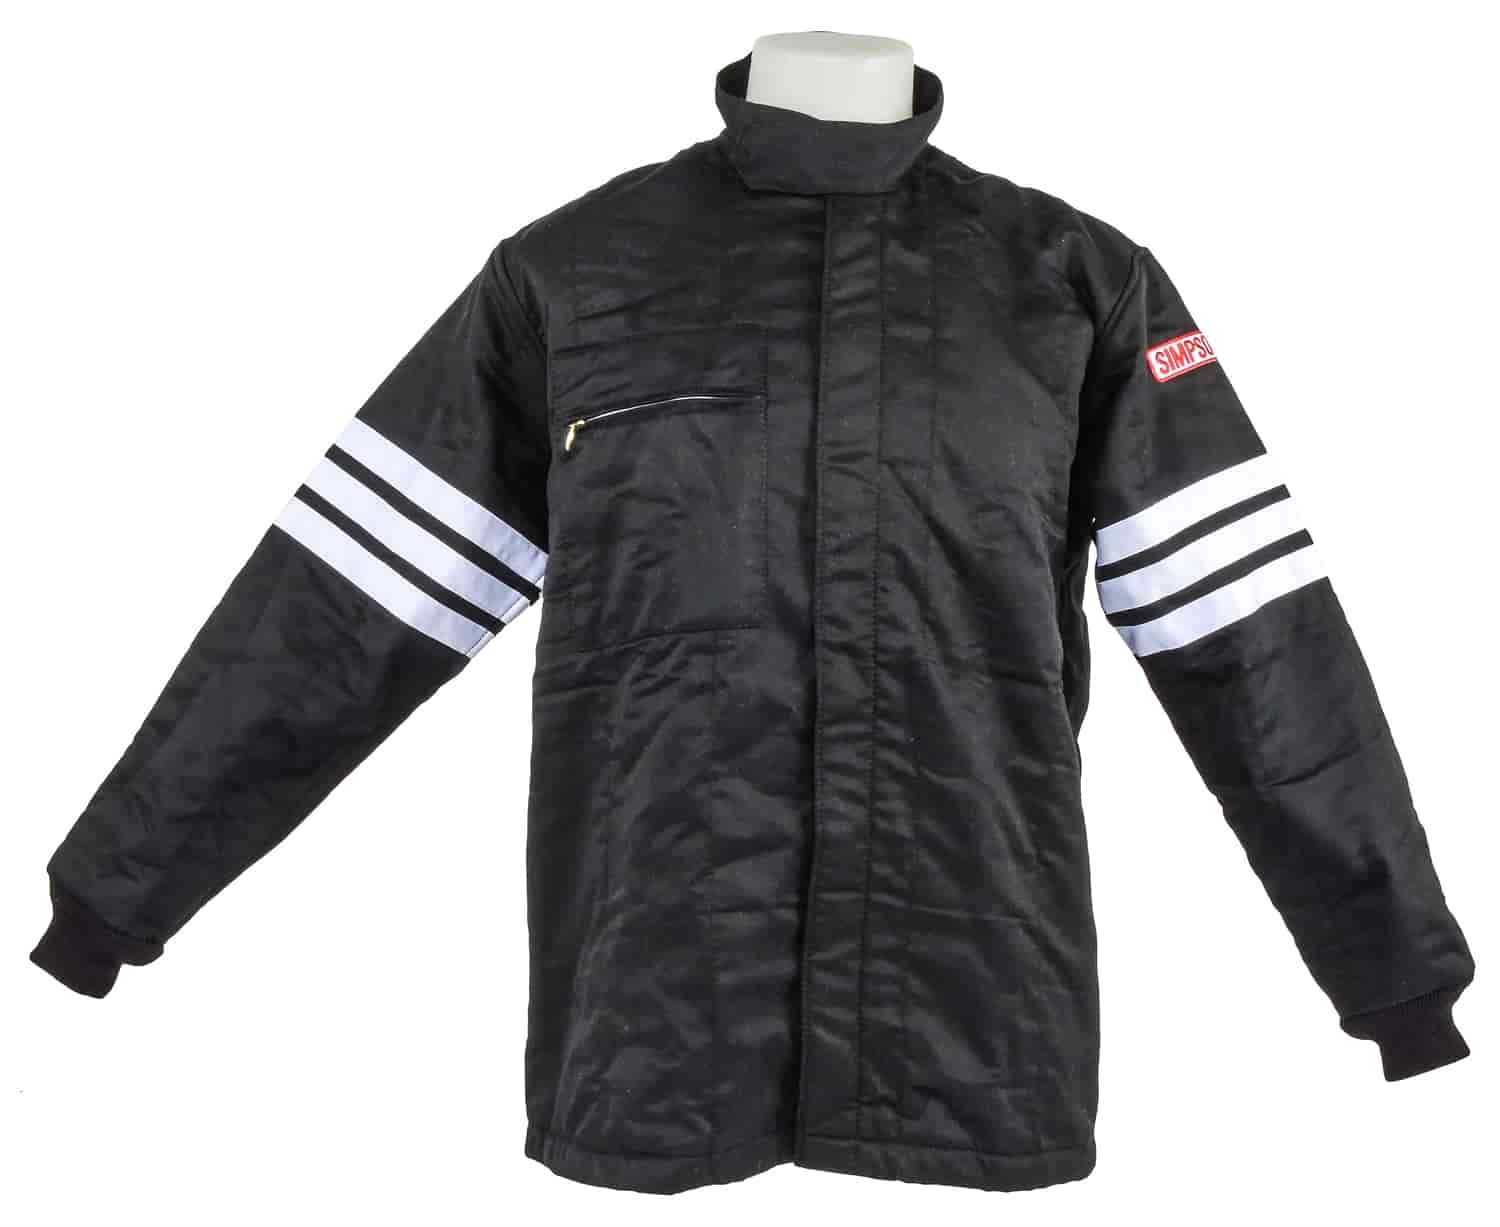 Simpson 0302112 - Simpson Classic 3-Stripe SFI-1 Driving Jackets, Pants and Suits